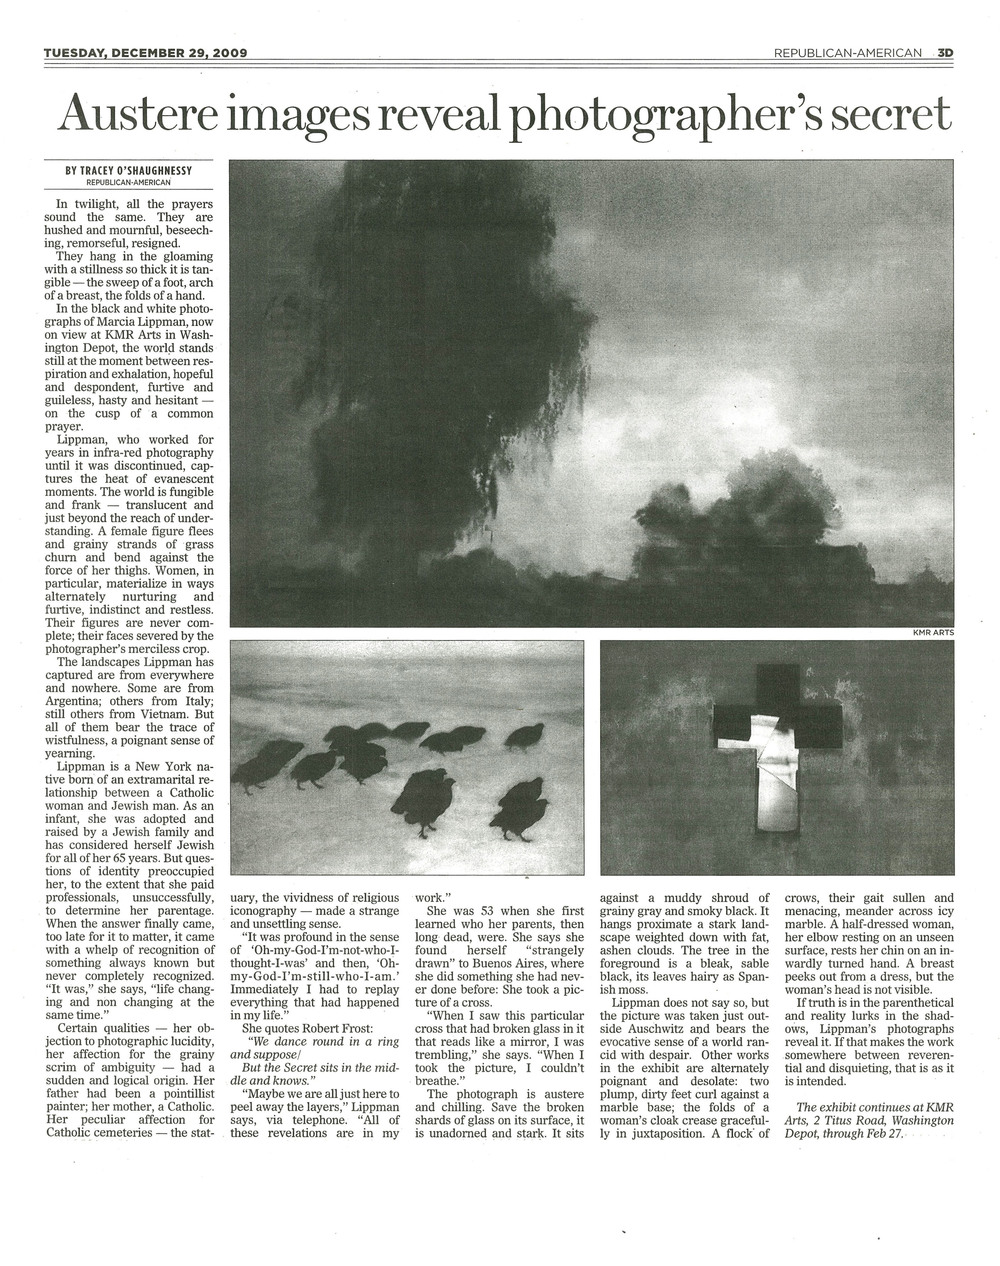 Austere Images Reveal Photographers' Secret. December 29, 2009. Republican American.jpg